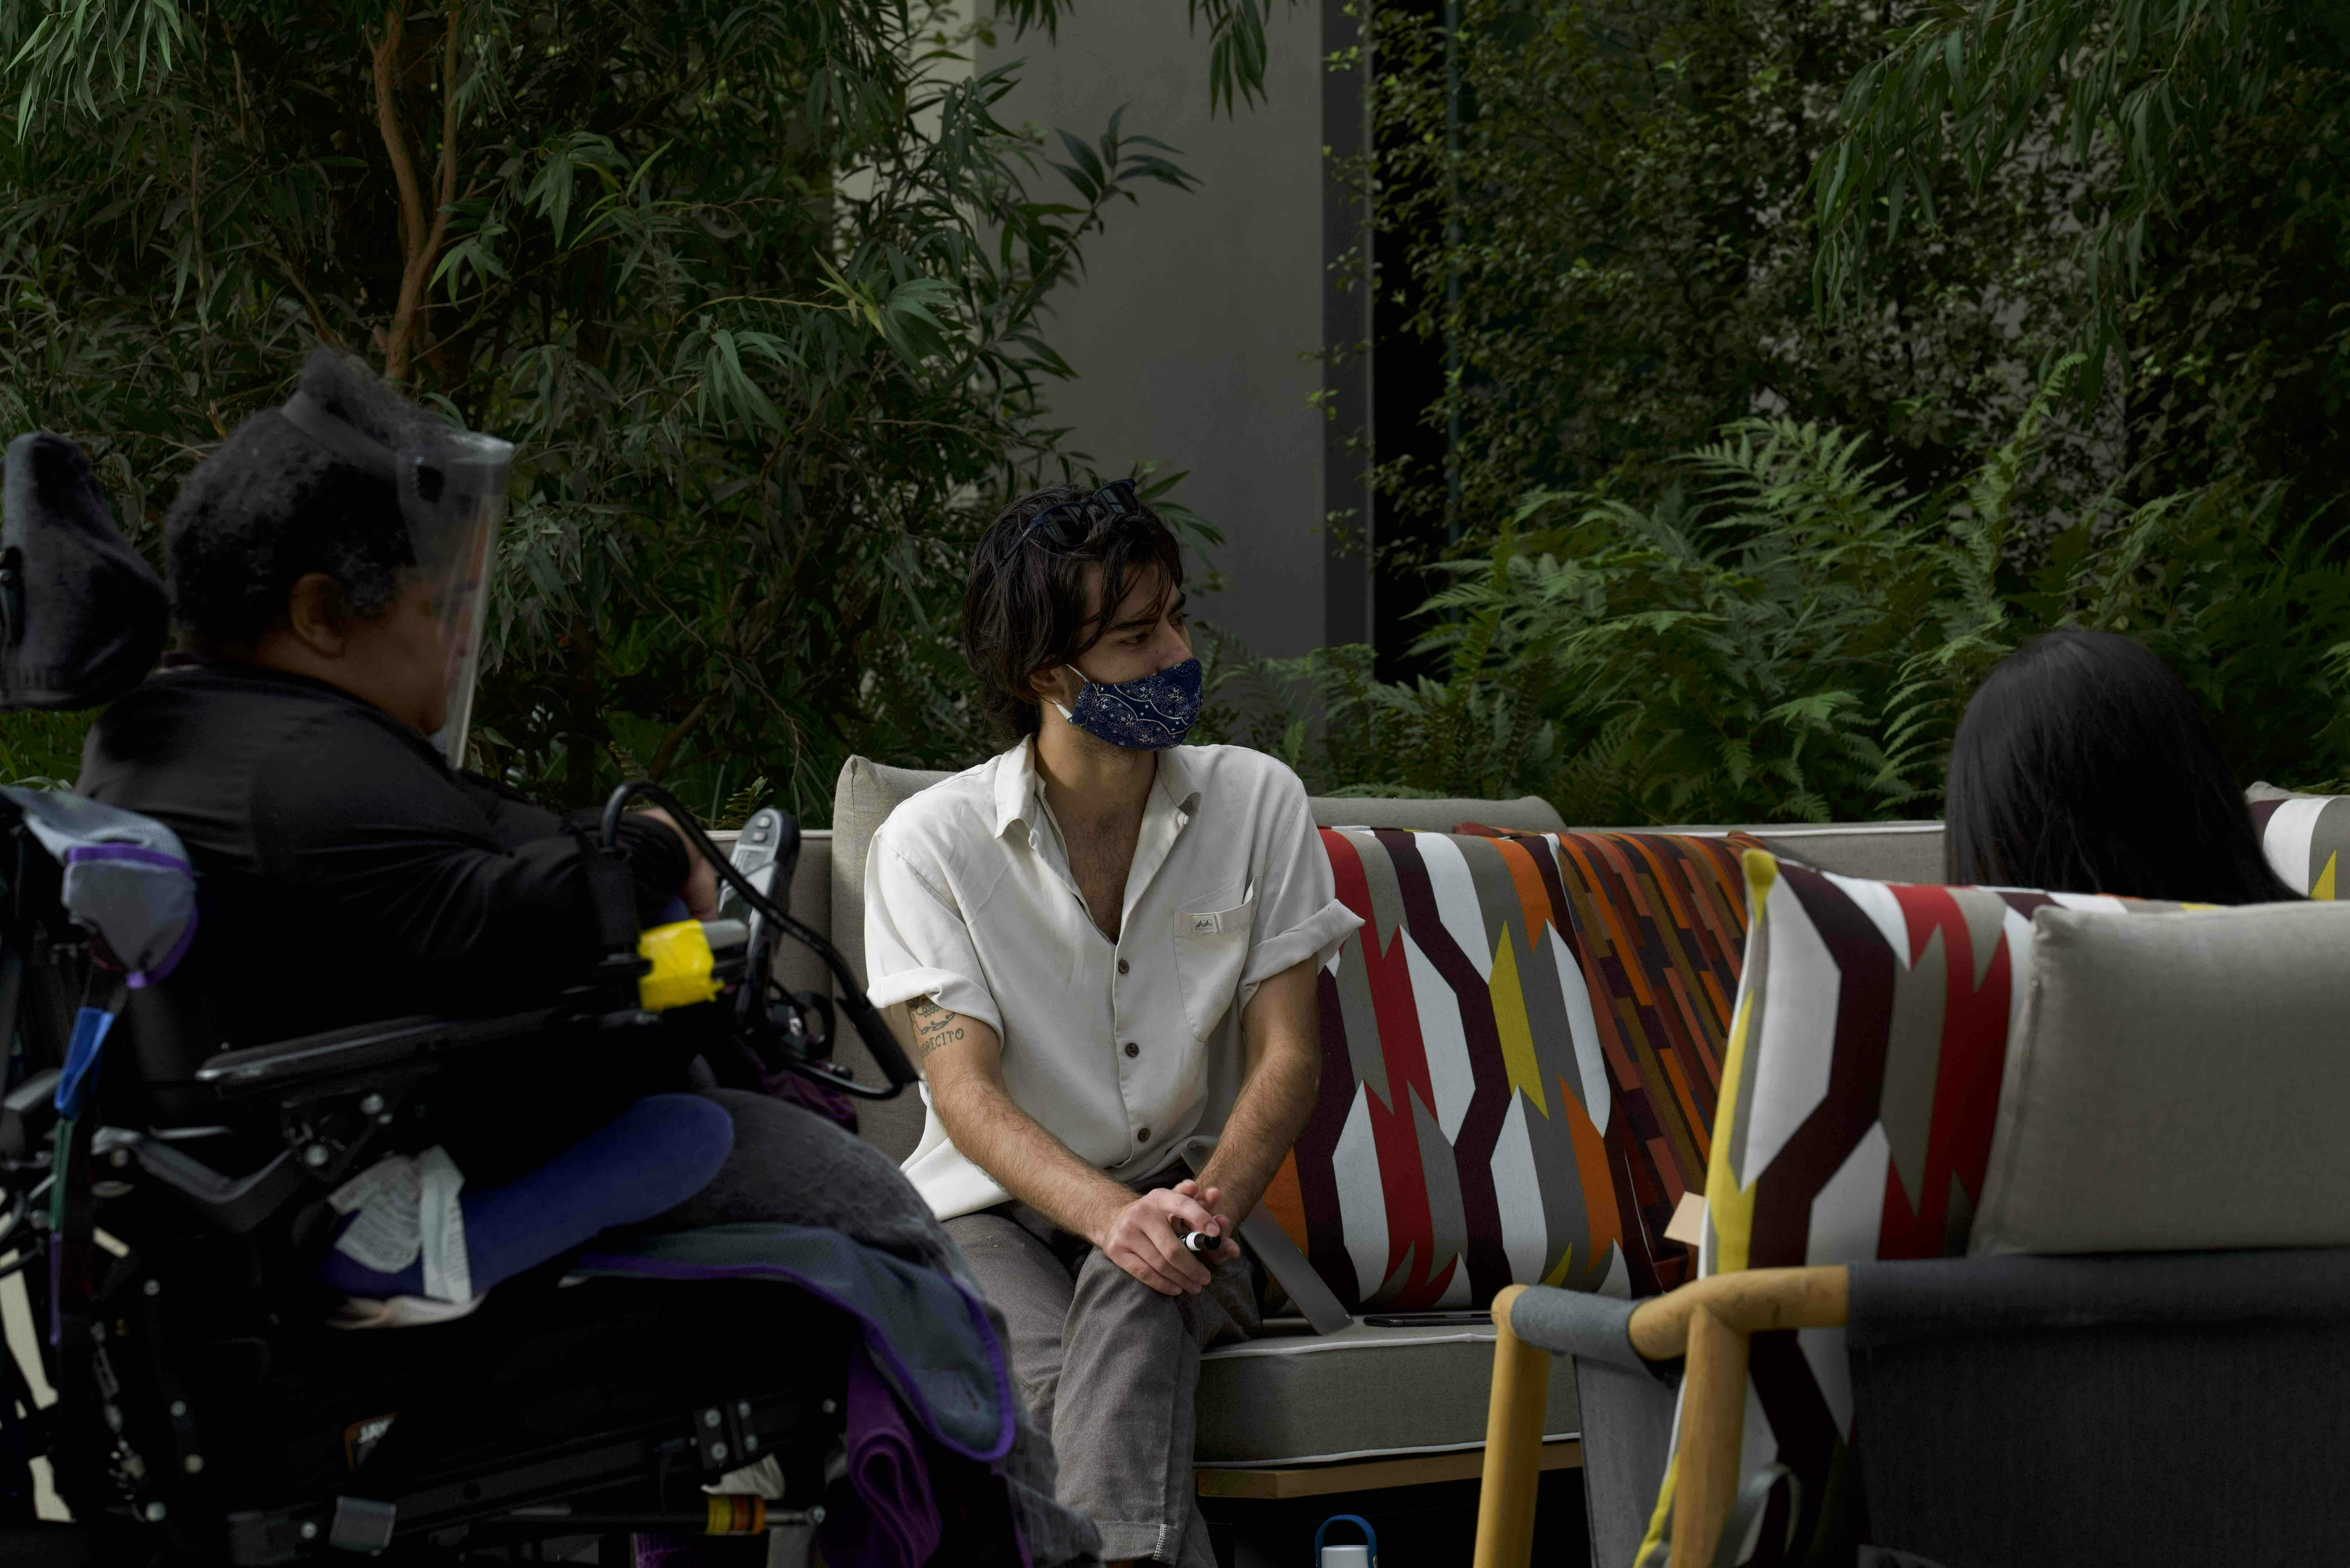 Image of support staff and person with disabilities sitting in wheelchair. There is greenery surrounding them.